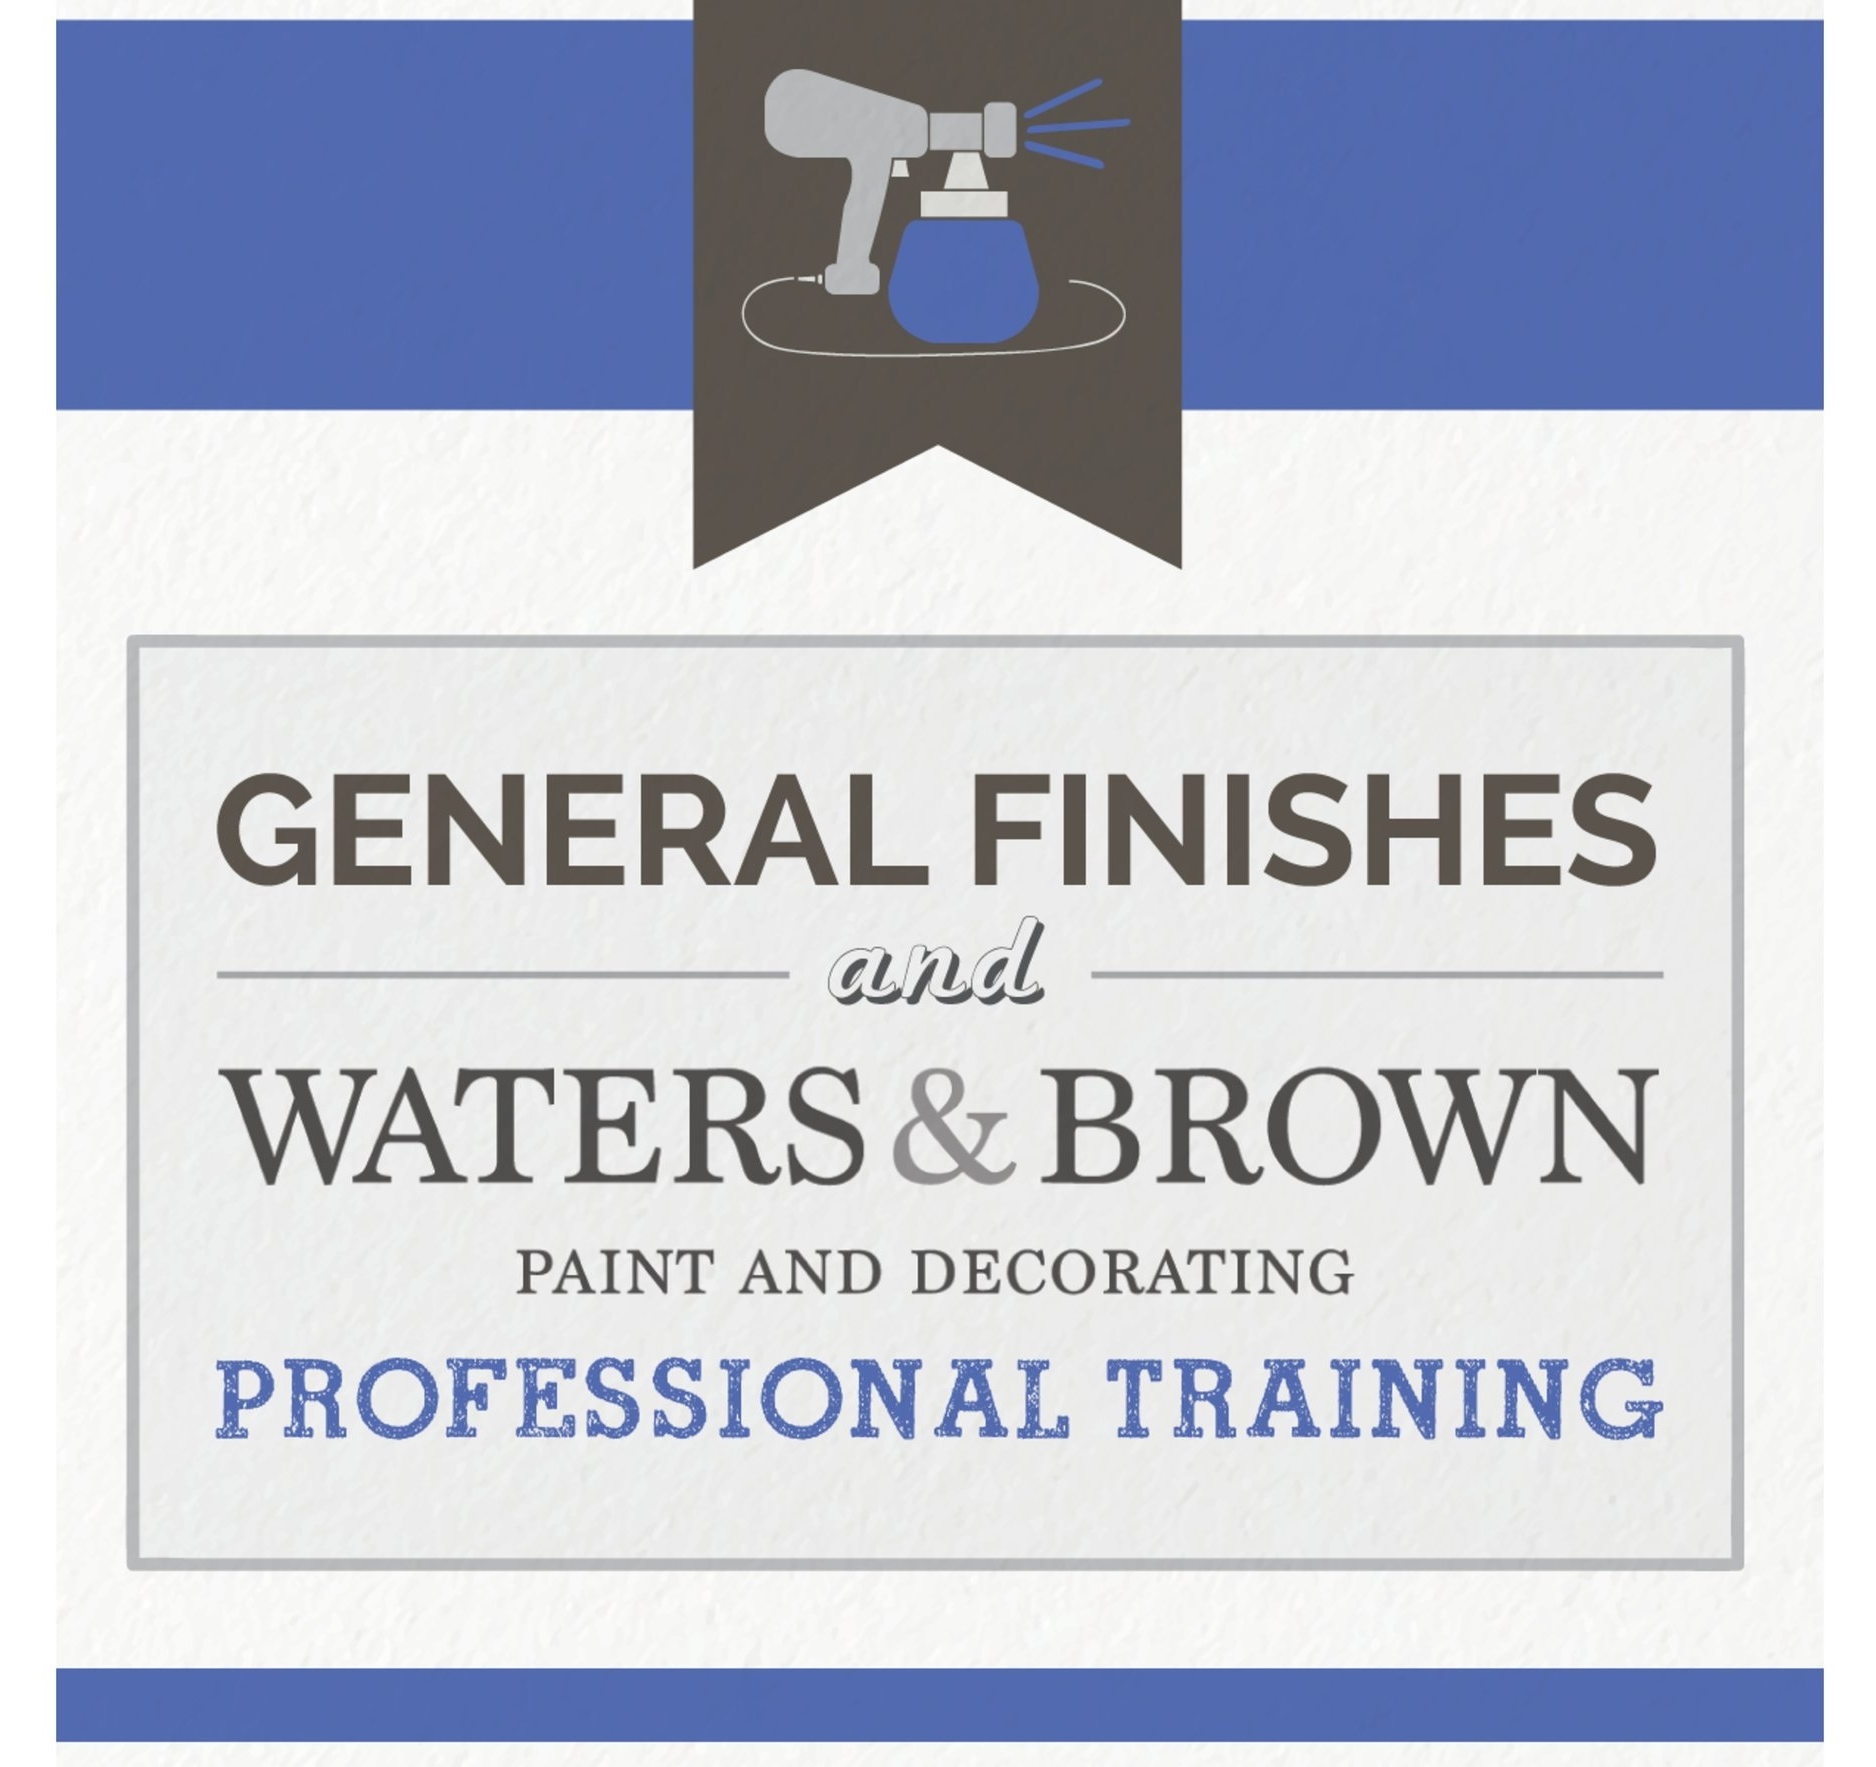 Thursday, December 6, 2018  5:00 p.m. to 8:00 p.m.  Waters & Brown – Salem Store  281 Derby Street  Salem, MA 01970  Curious about creating fine finishes using water-based technology? This event is for serious professionals who want to learn more about General Finishes' professional product line.  Click  here  to register.